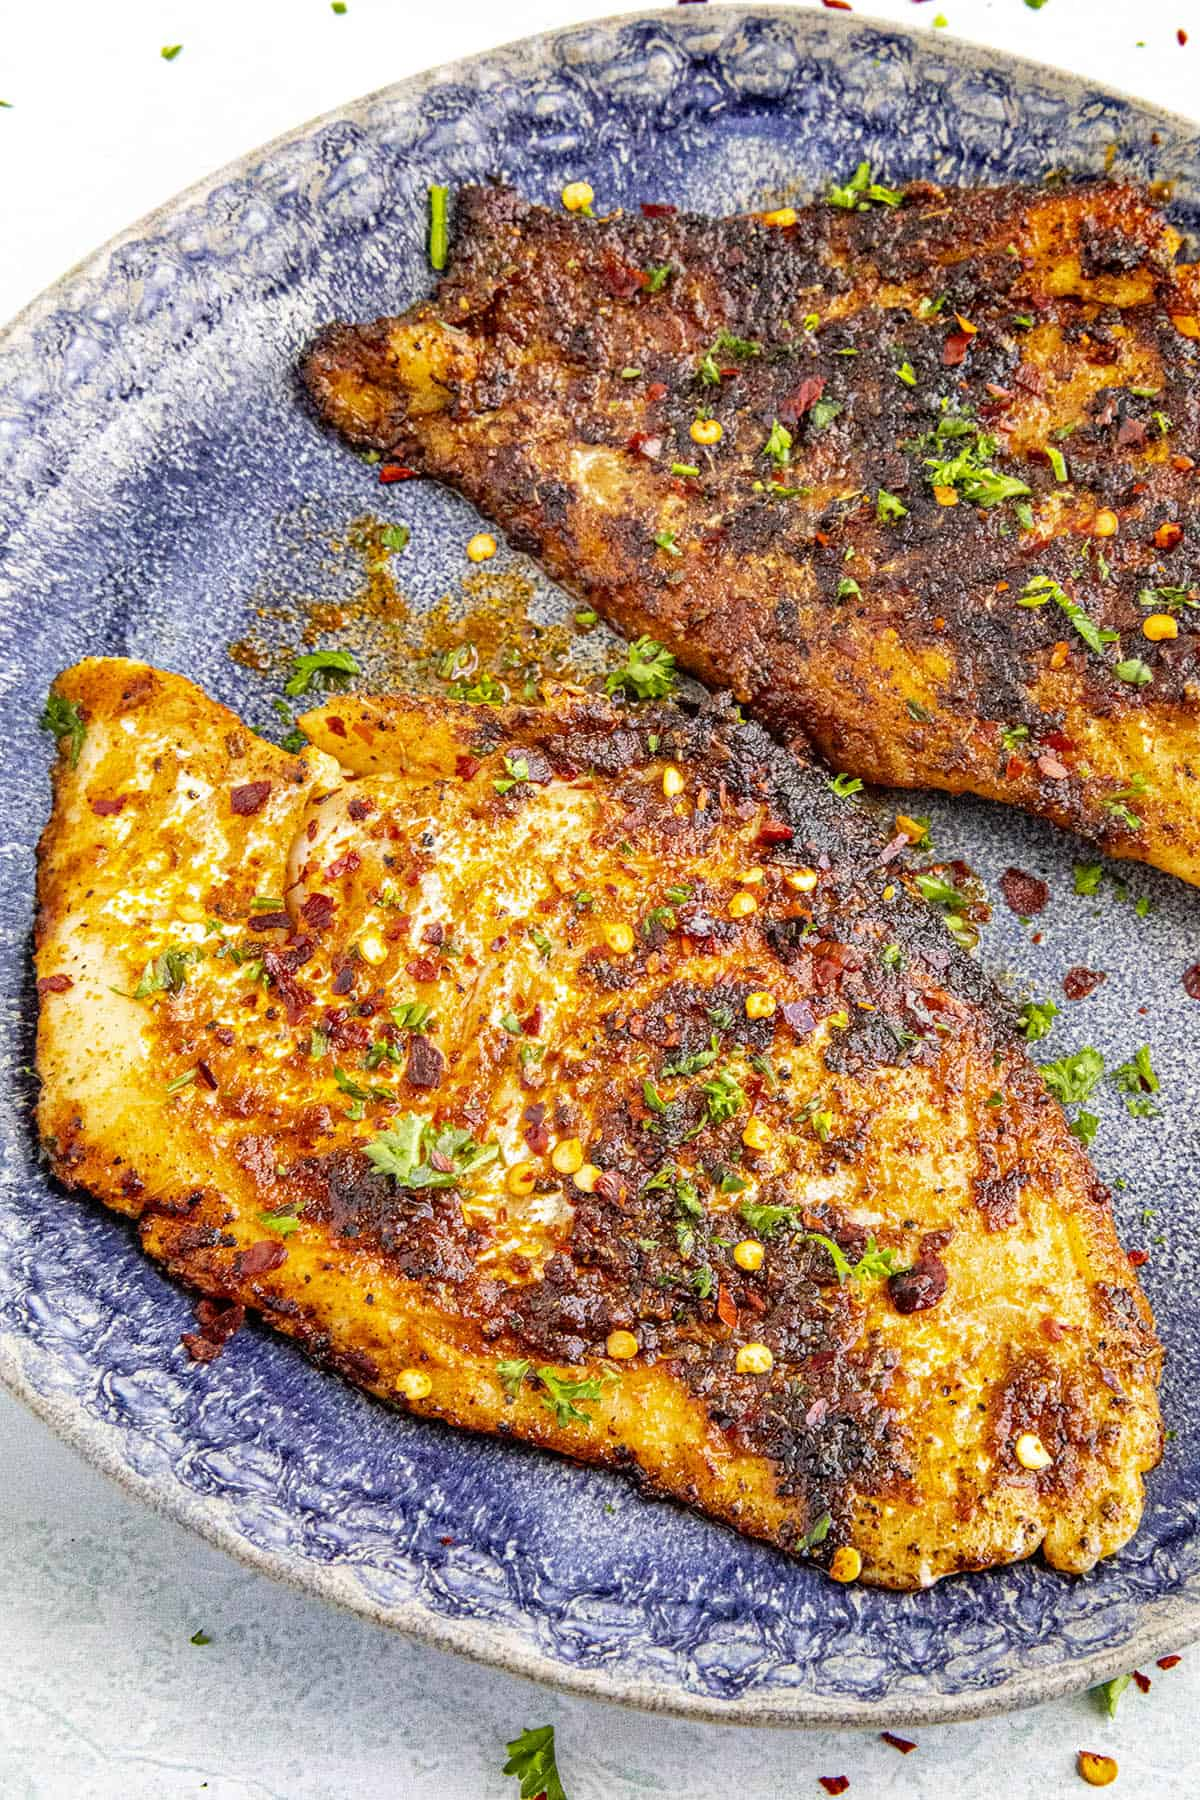 Two pieces of Blackened Fish on a plate